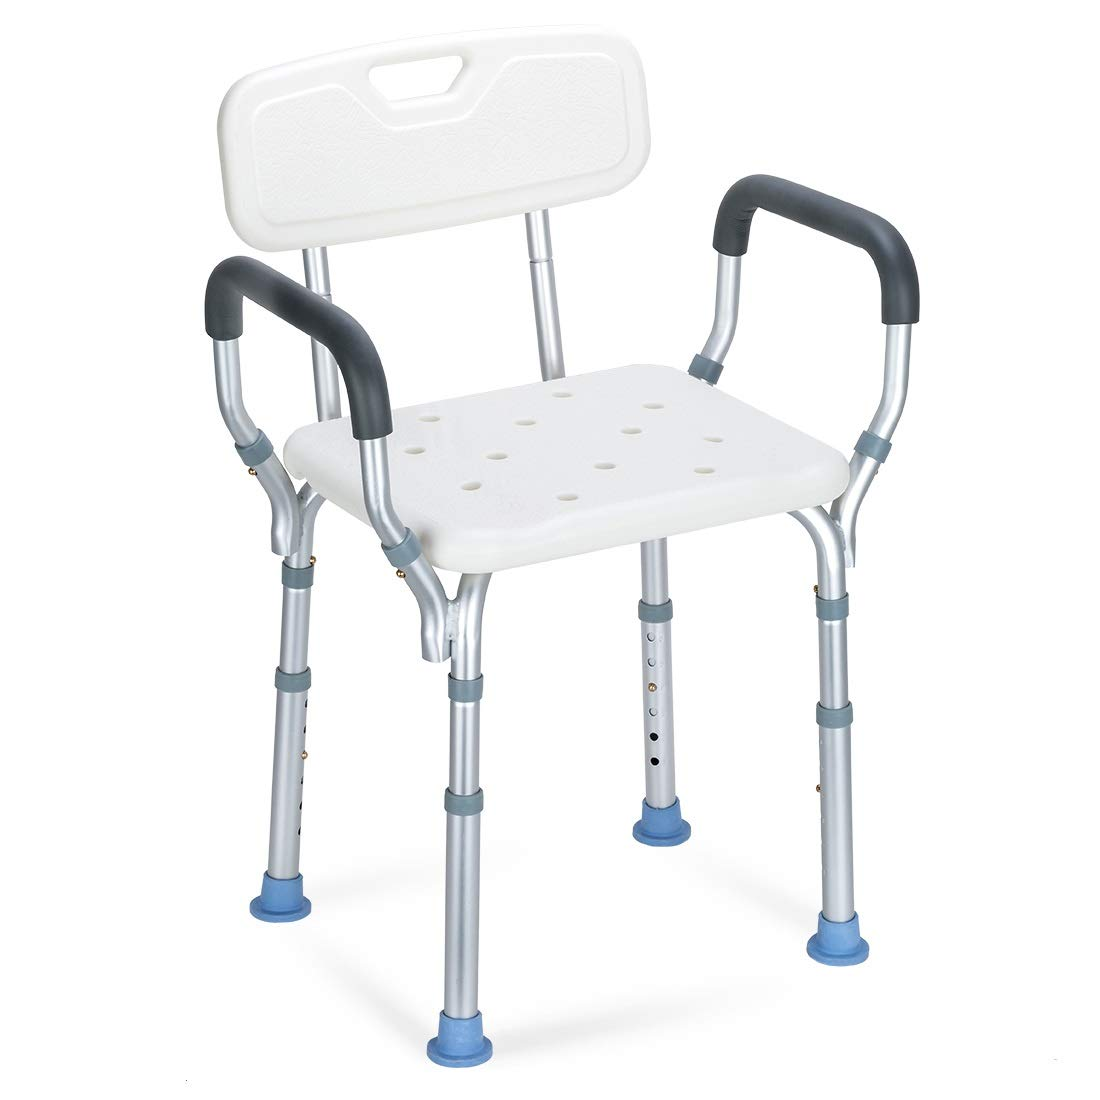 OasisSpace Heavy Duty Shower Chair with Back - Bathtub Chair with Arms for  Handicap, Disabled, Seniors & Elderly - Adjustable Medical Bath Seat